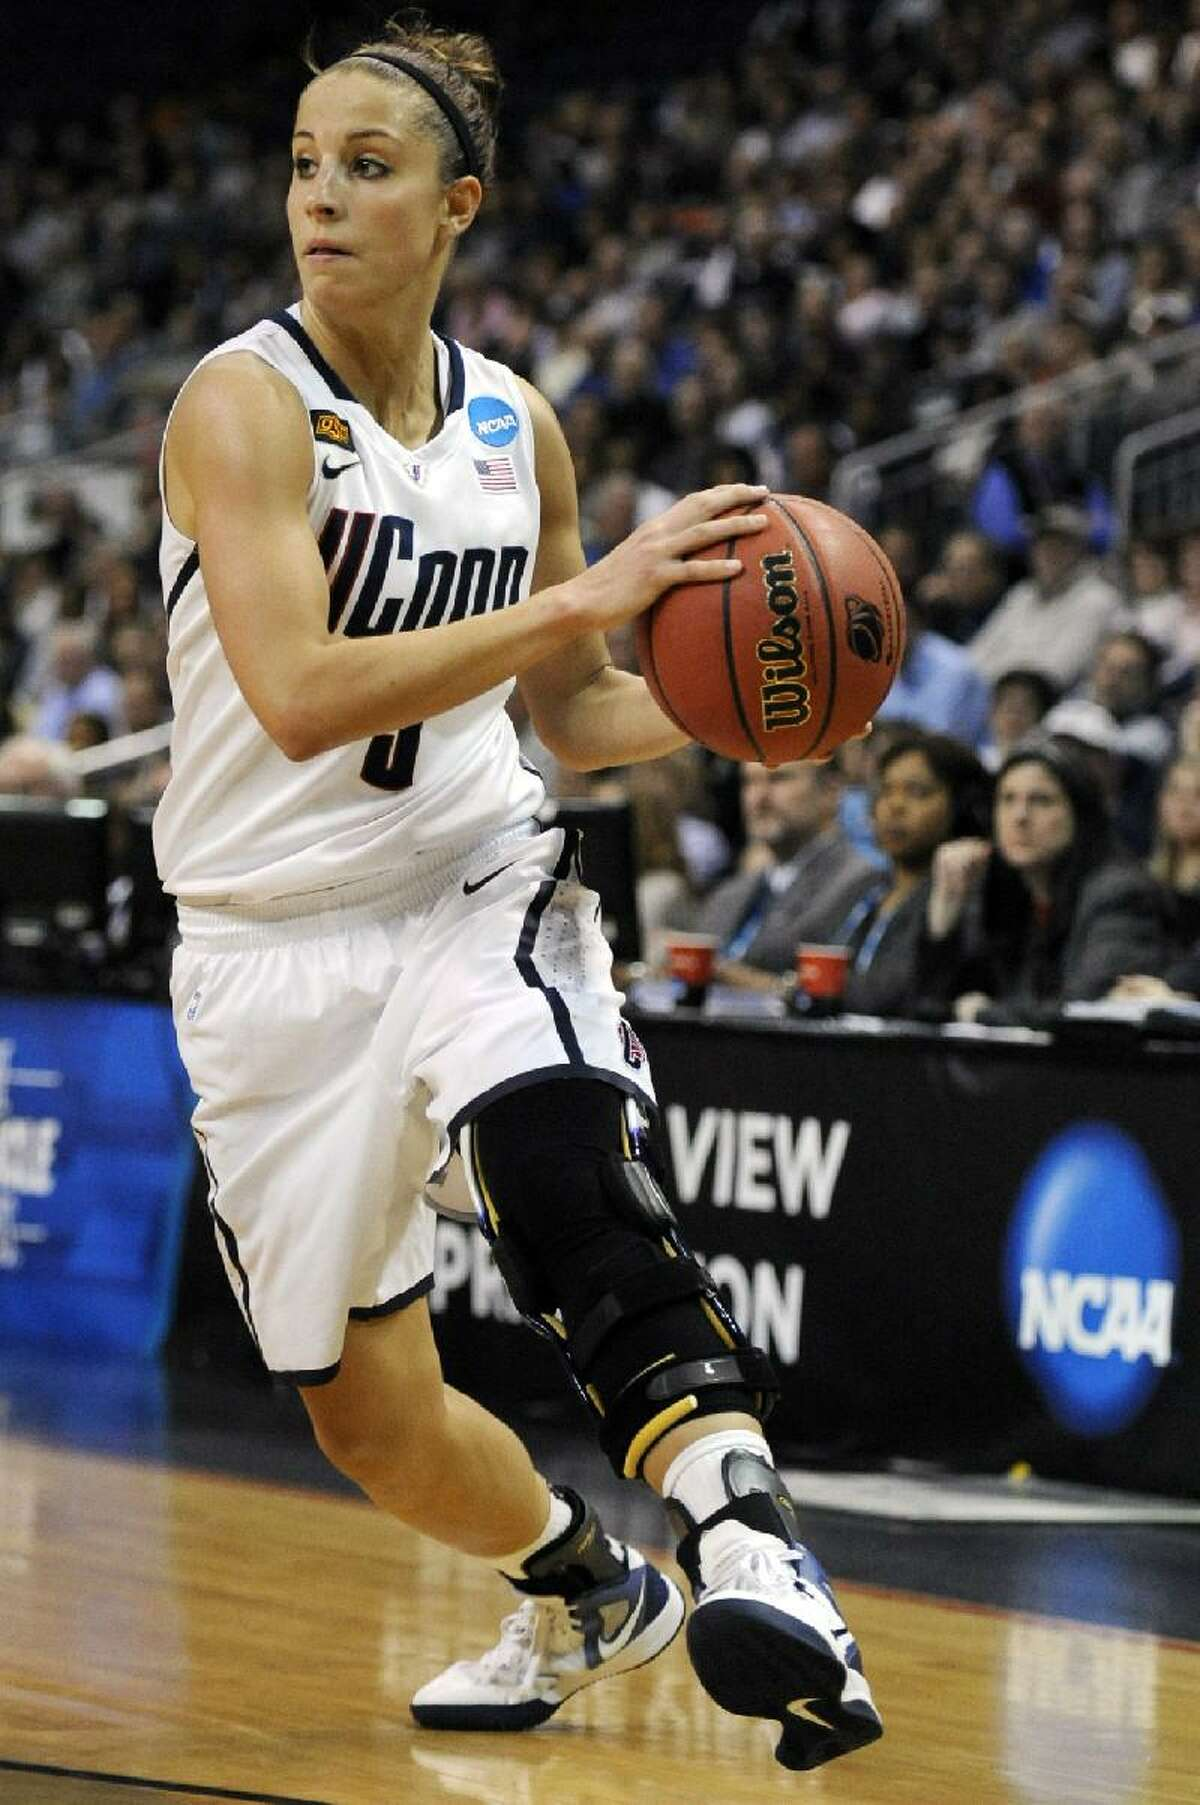 ASSOCIATED PRESS Connecticut's Caroline Doty looks to pass during the first half of an NCAA tournament second-round game against Kansas State in Bridgeport on March 19. Doty will have a reunion of sorts when she faces former teammate Maggie Lucas and Penn State in a Kingston Regional semifinal on Sunday.